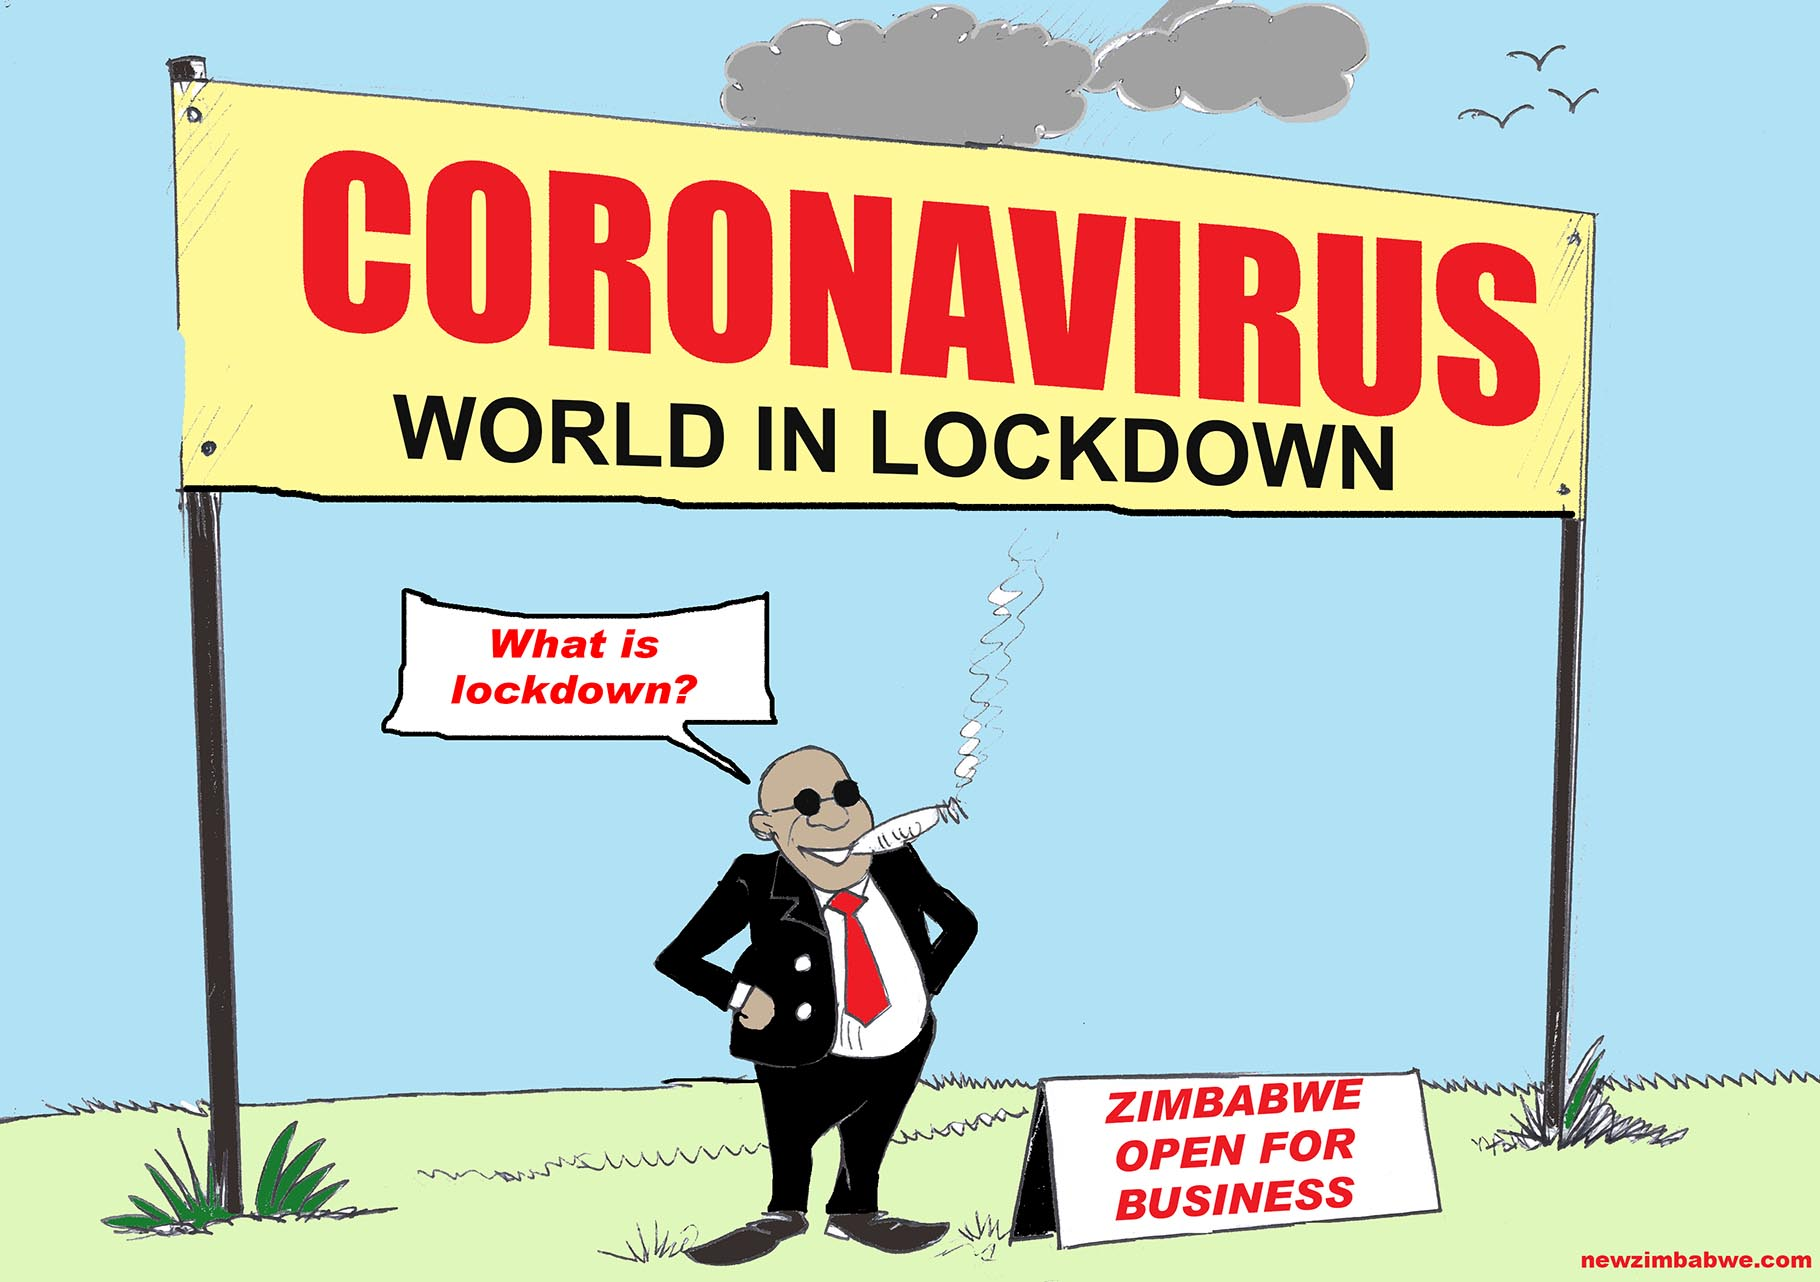 Coronavirus and Zim open for business